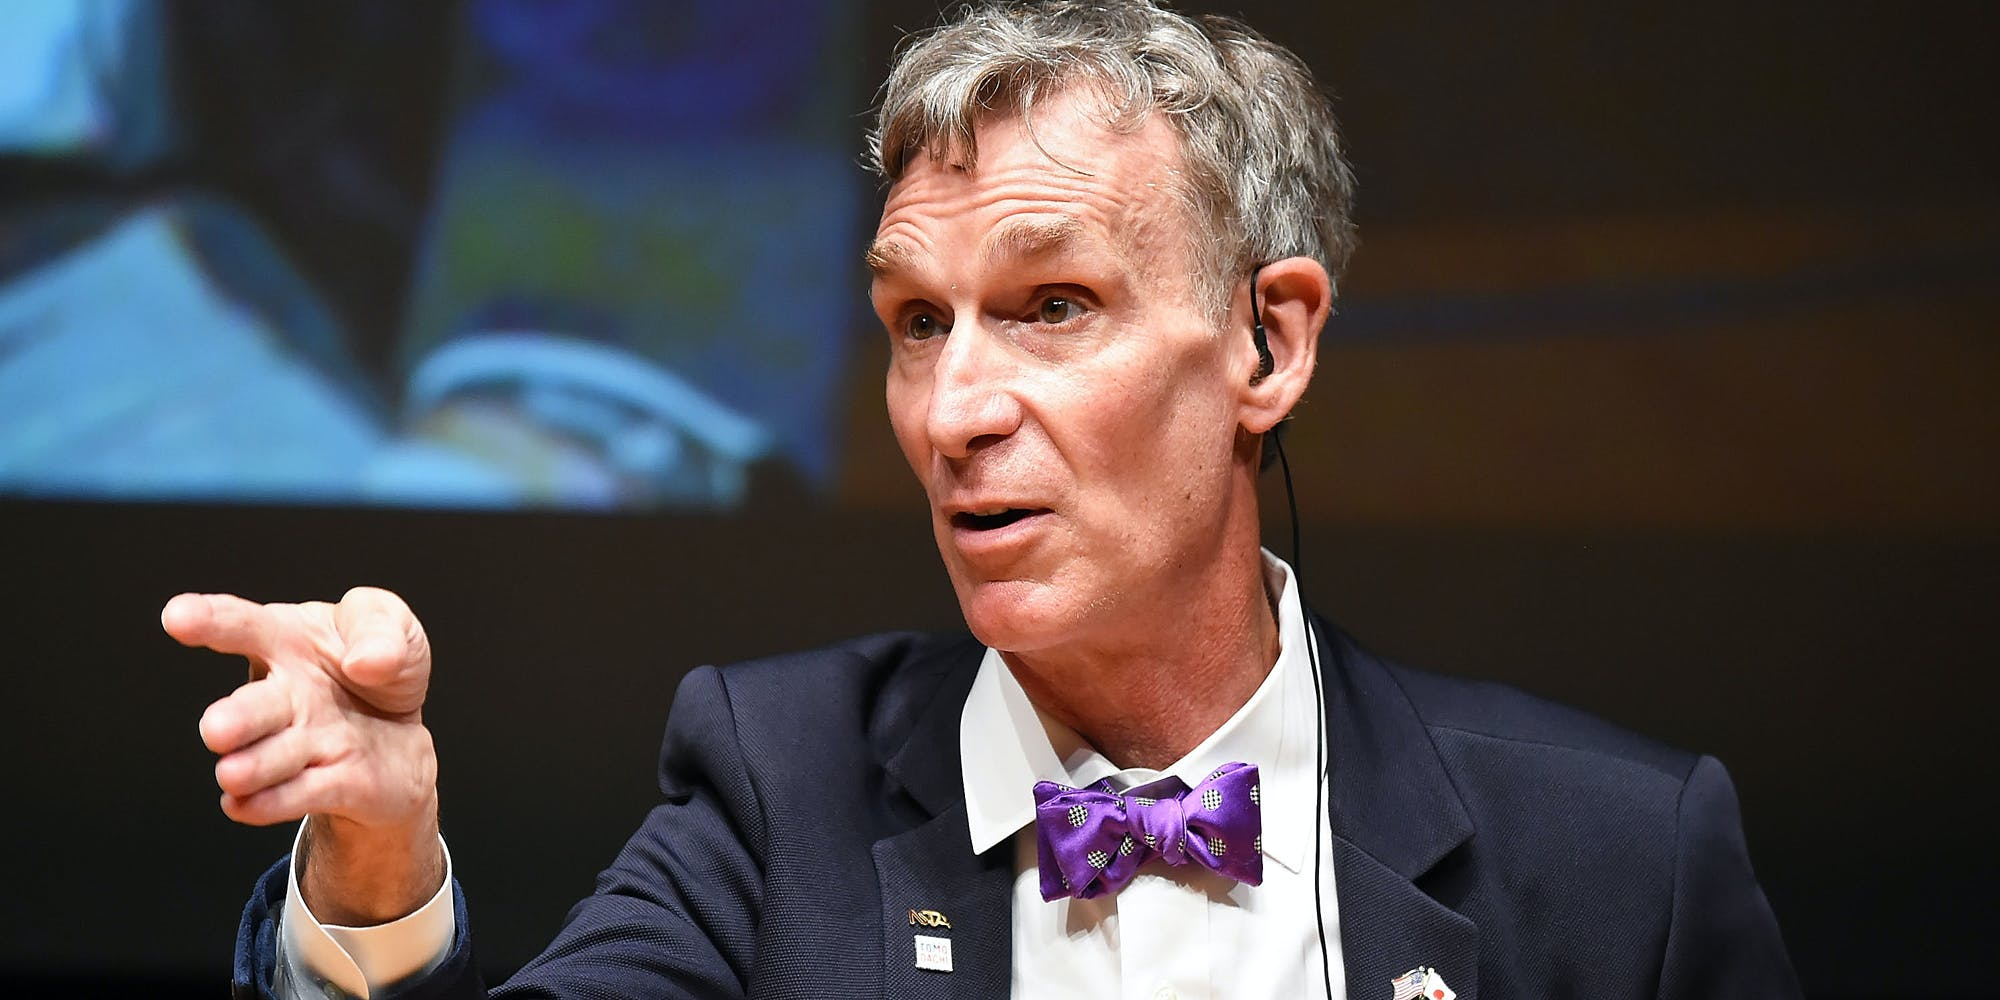 Bill Nye Medical marijuana research